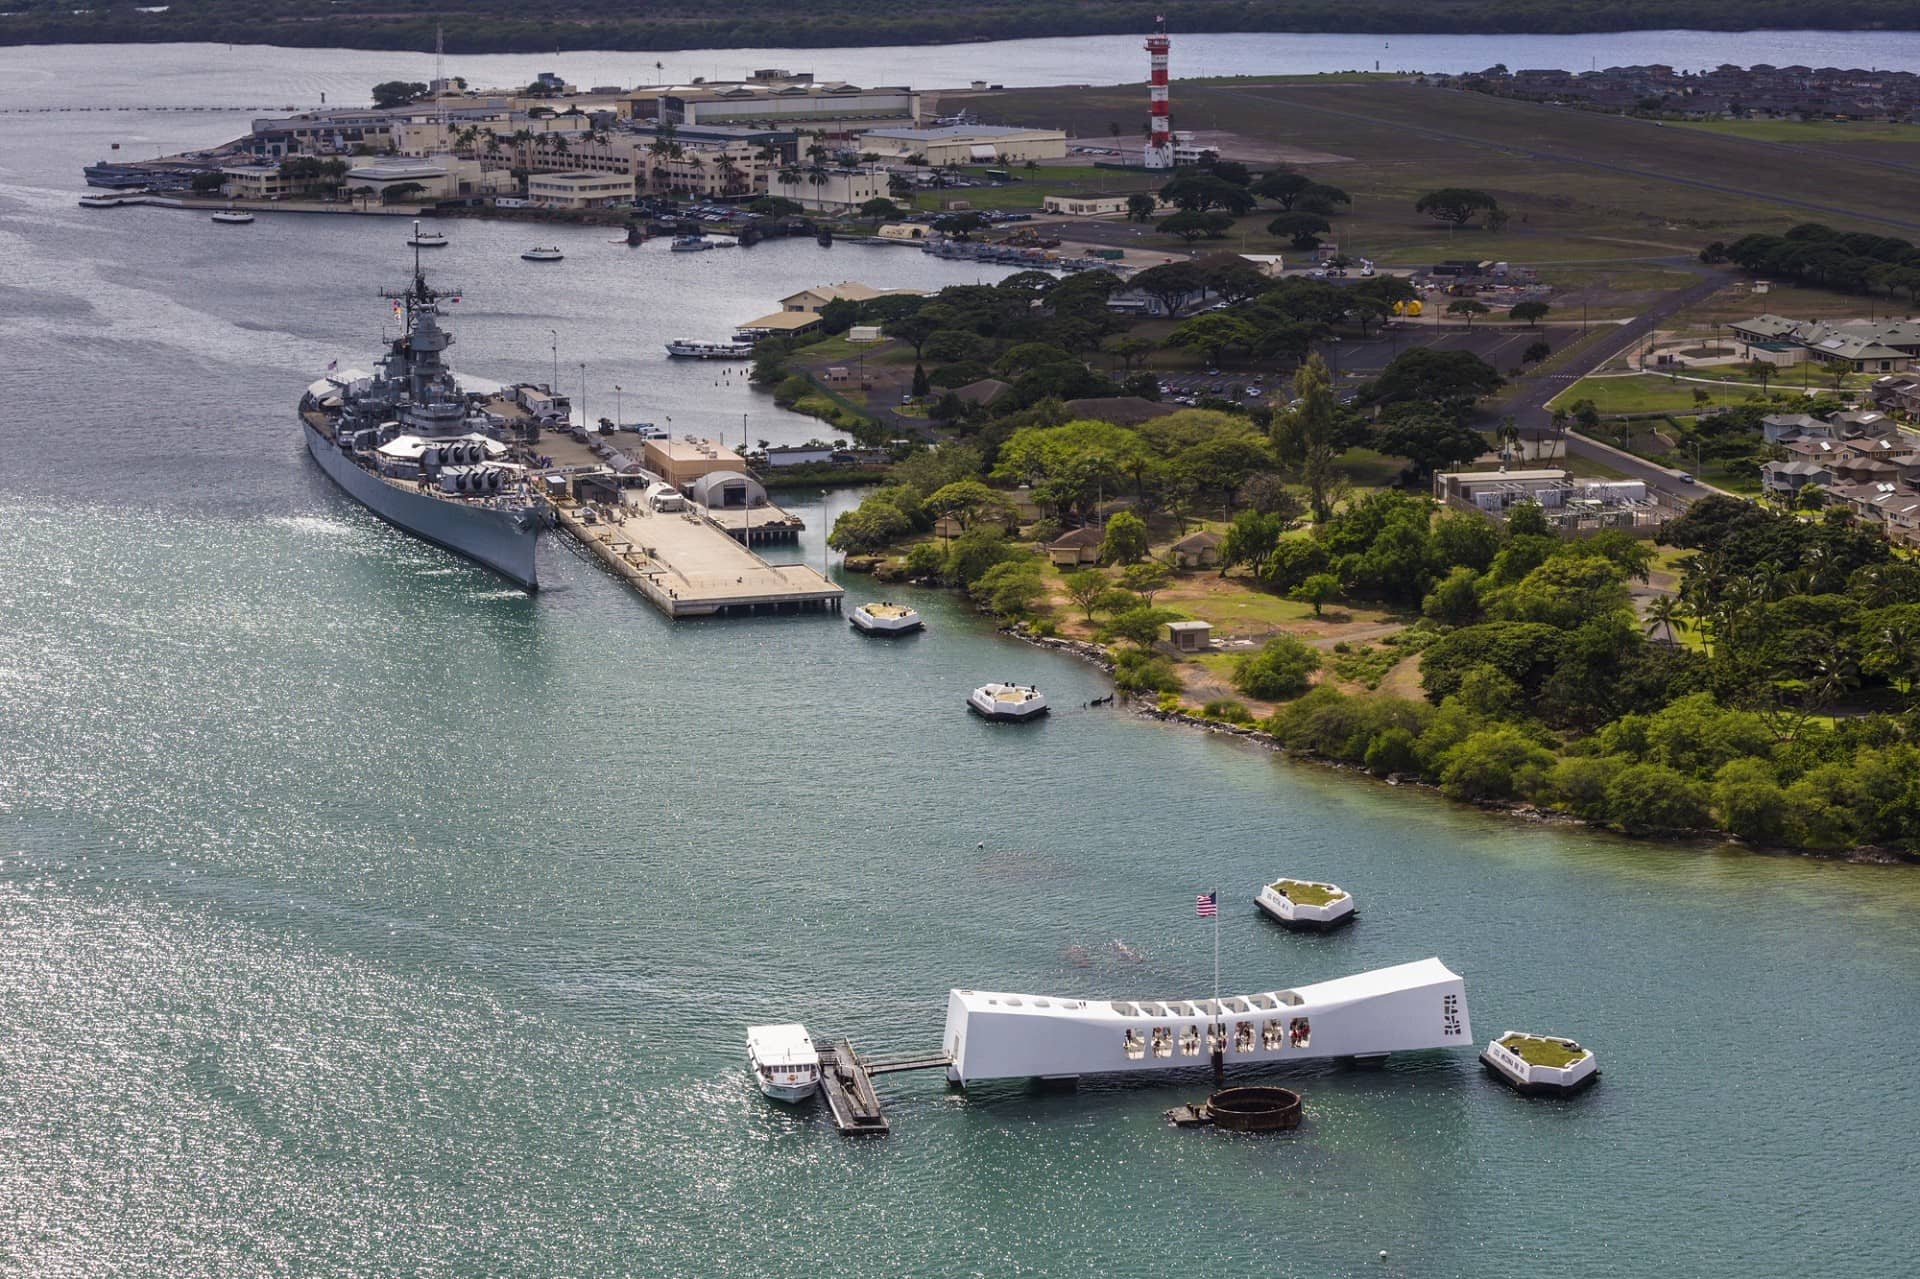 Uss Arizona Memorial Tour Missouri Battleship Museum At